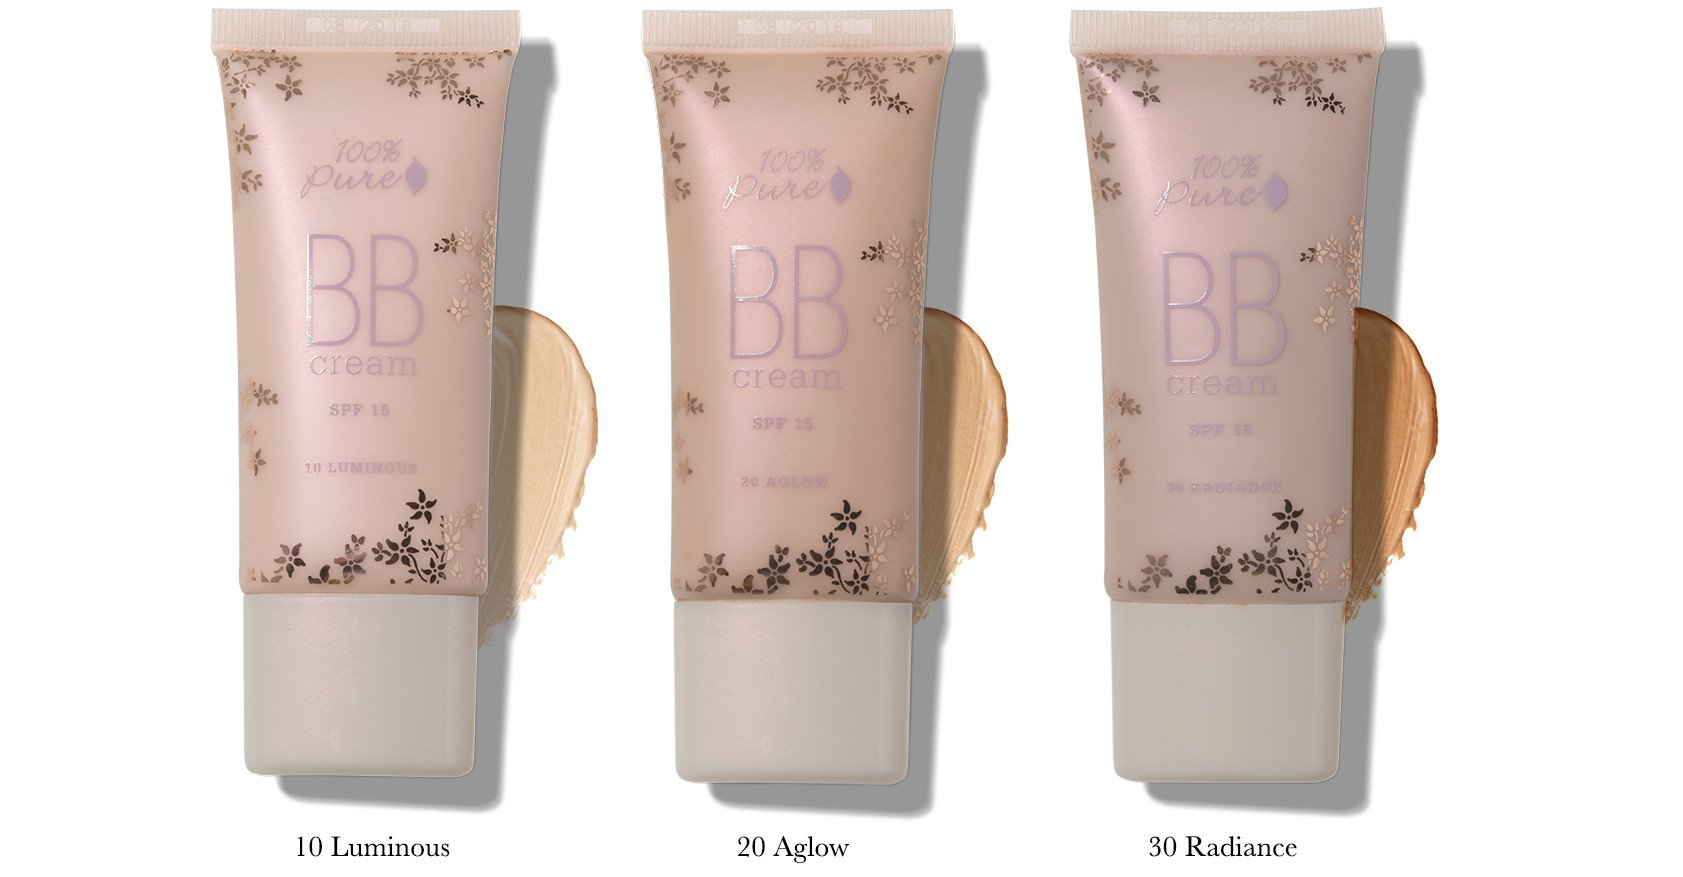 100% Pure Naturkosmetik Foundation / BB Cream